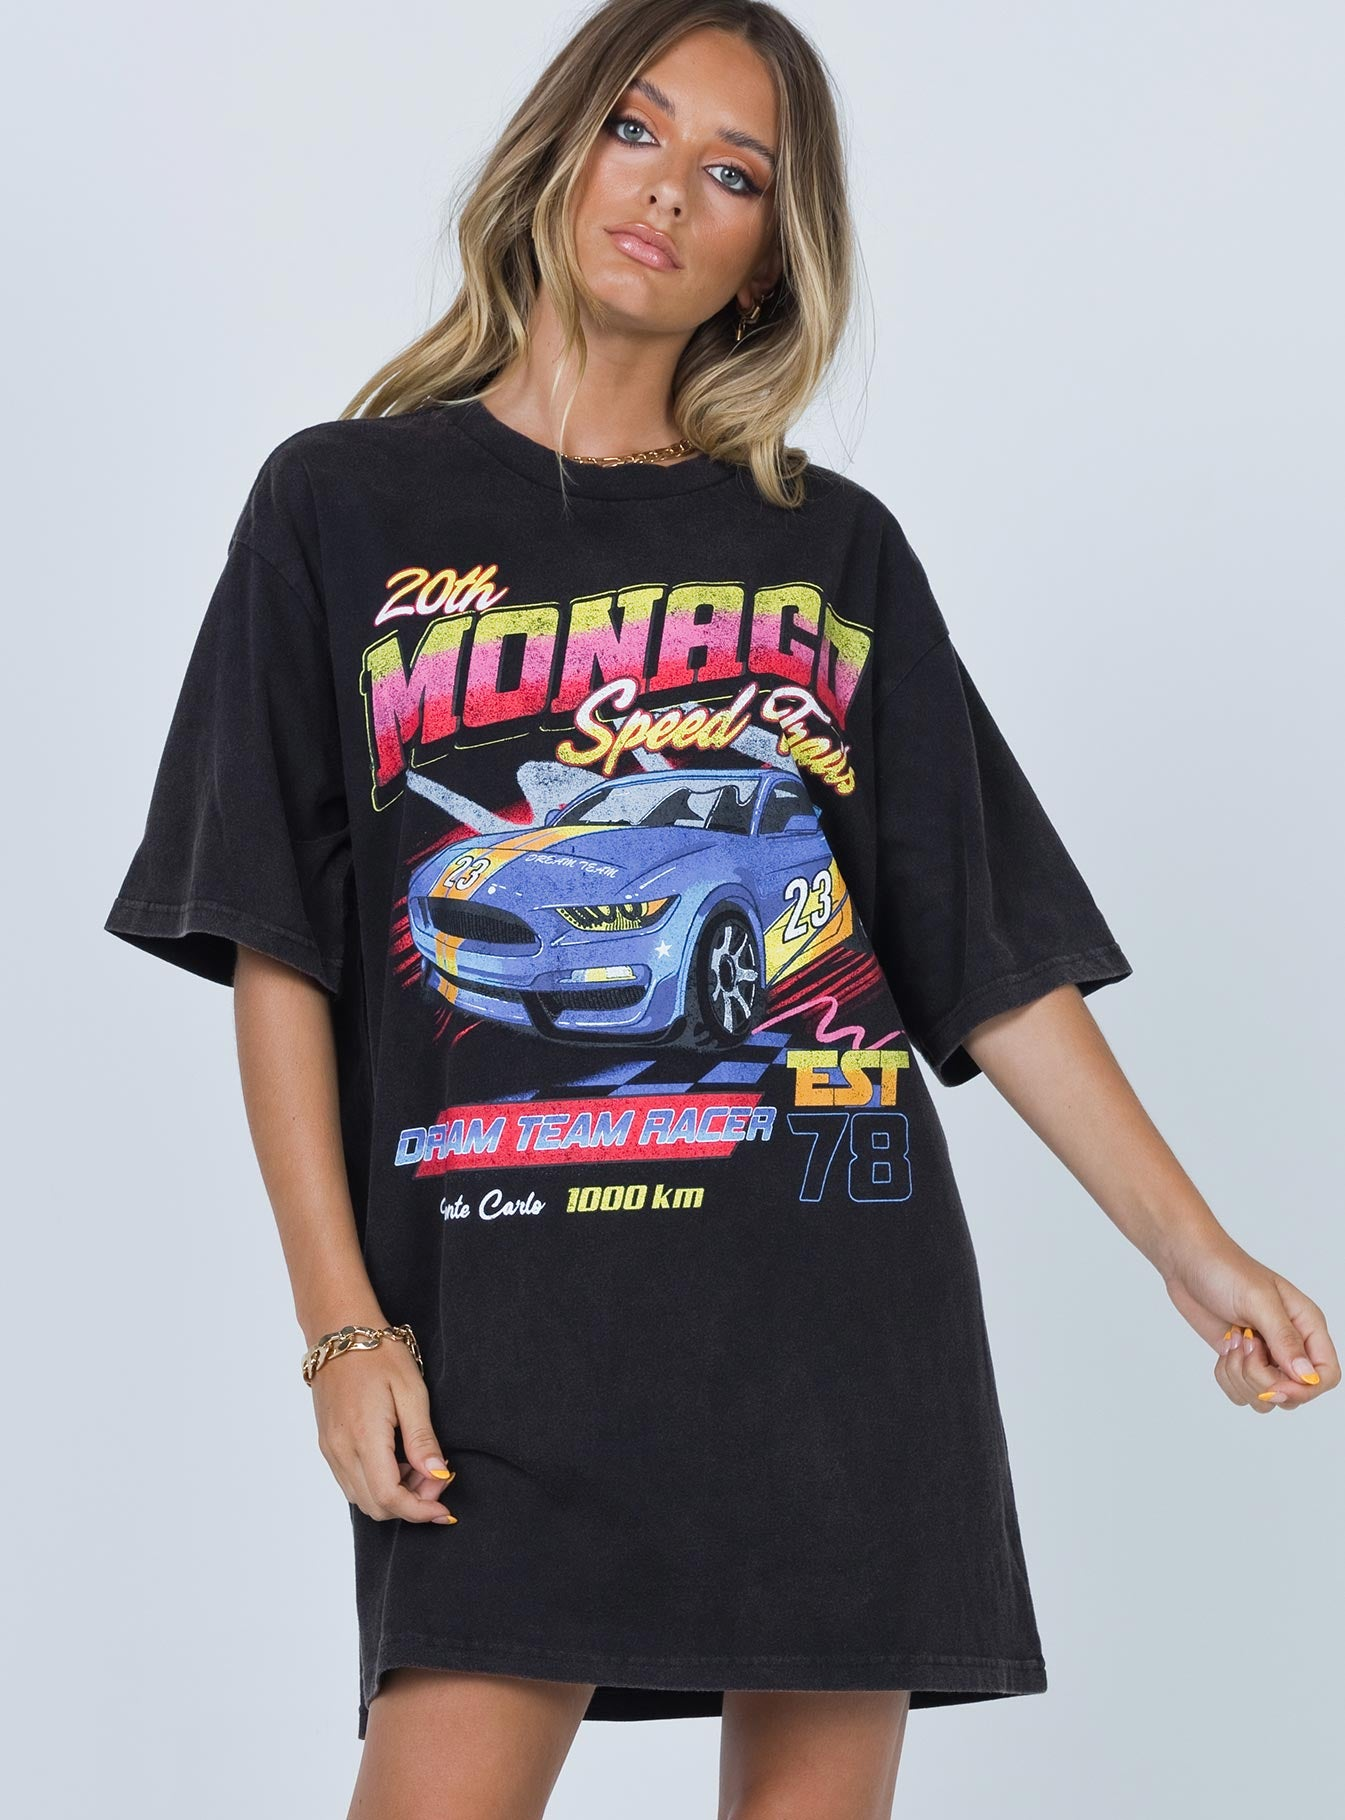 Monago Speed Racer Tee Mini Dress Black